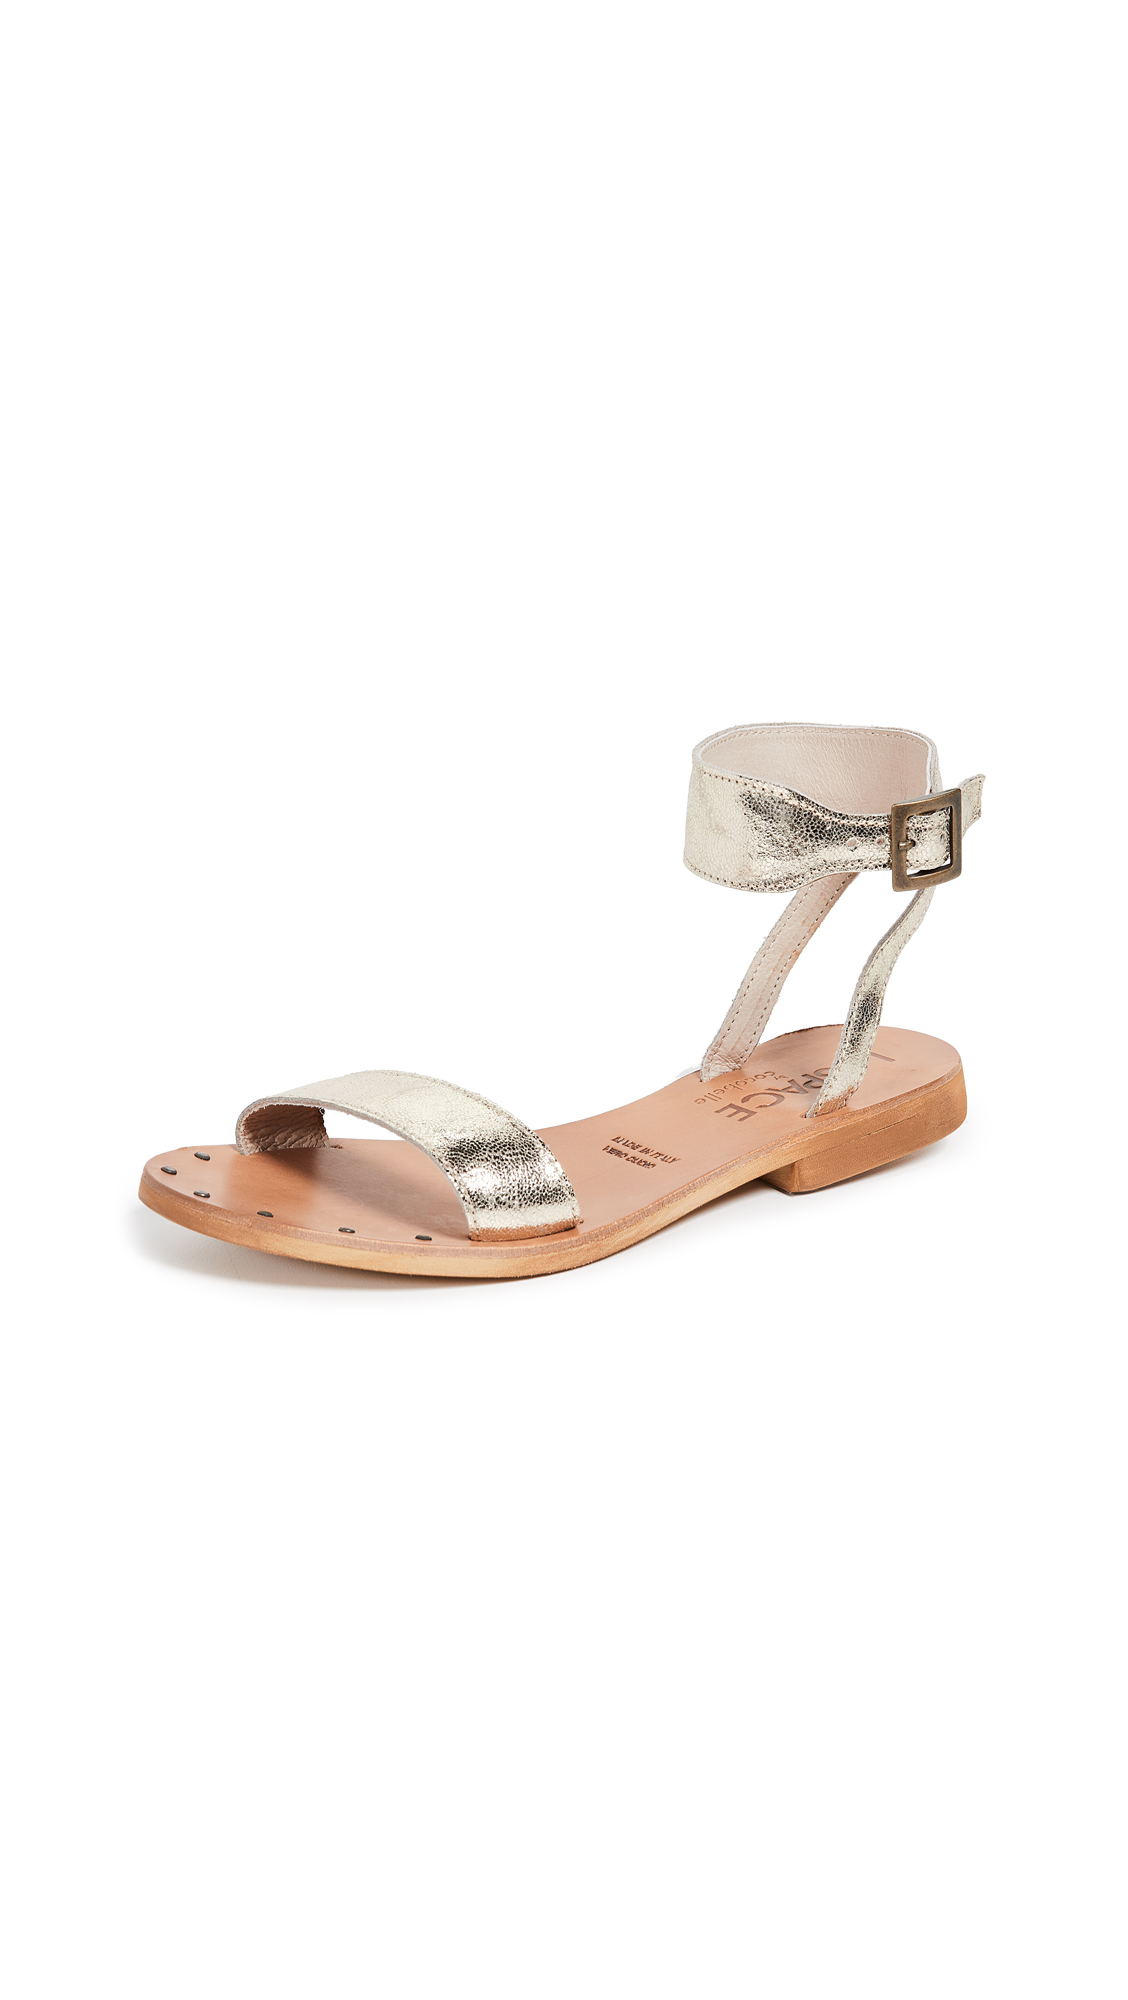 Cocobelle x L*Space Hanalei Sandals - Antique Gold